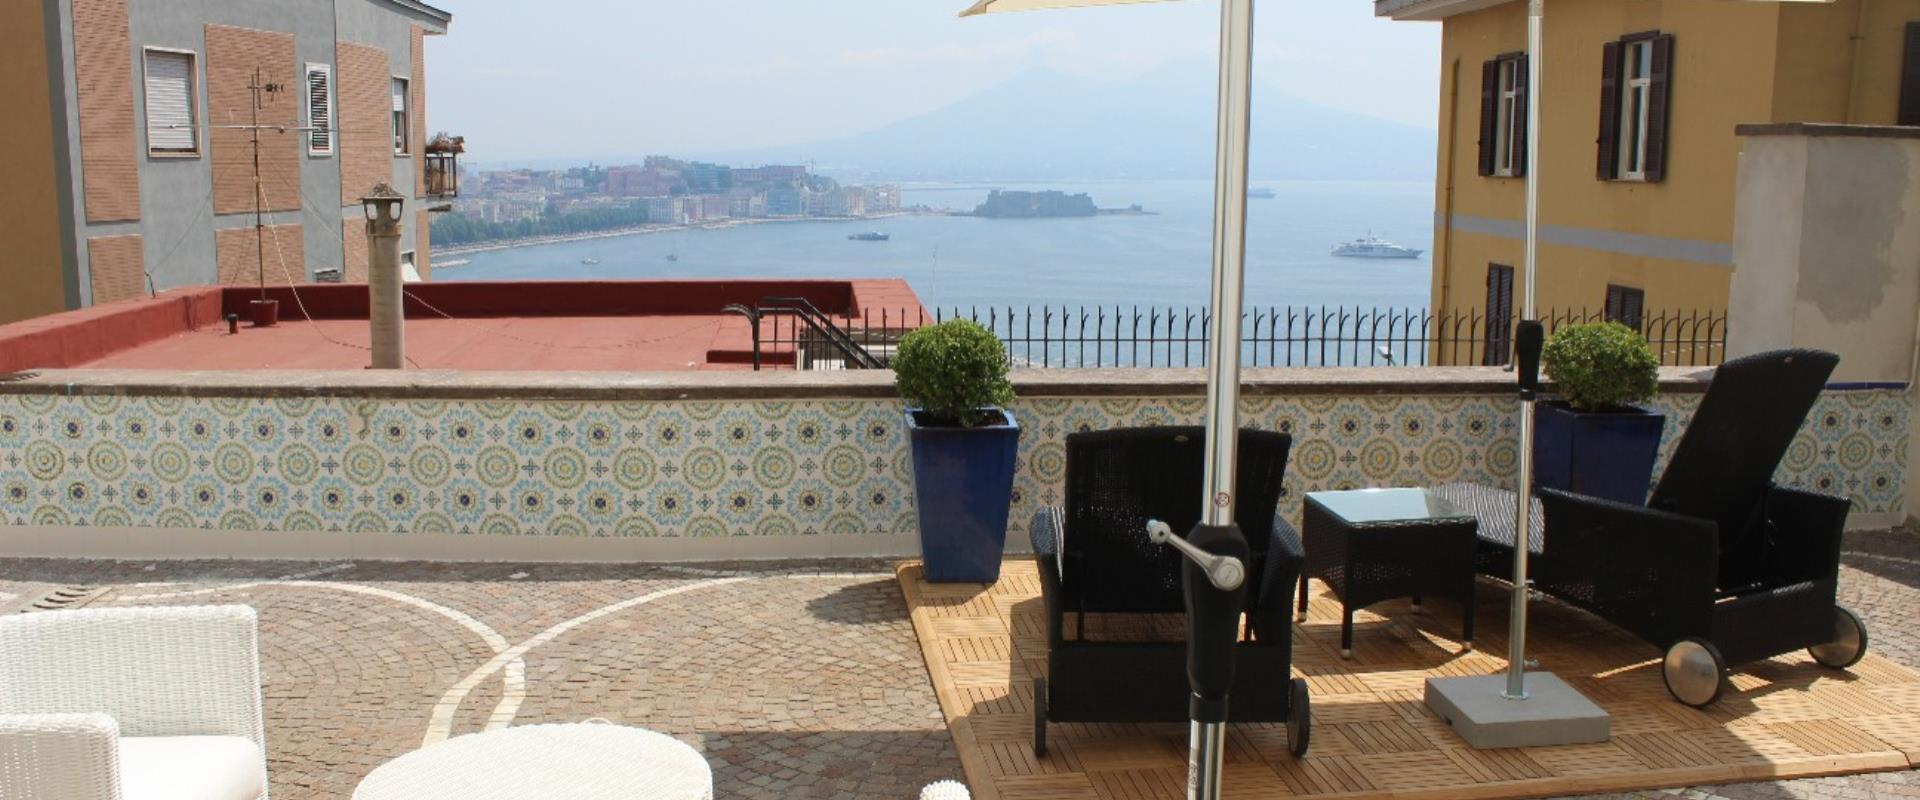 Discover the wonderful view over the Gulf of Naples that you can admire from the Hotel Paradise!